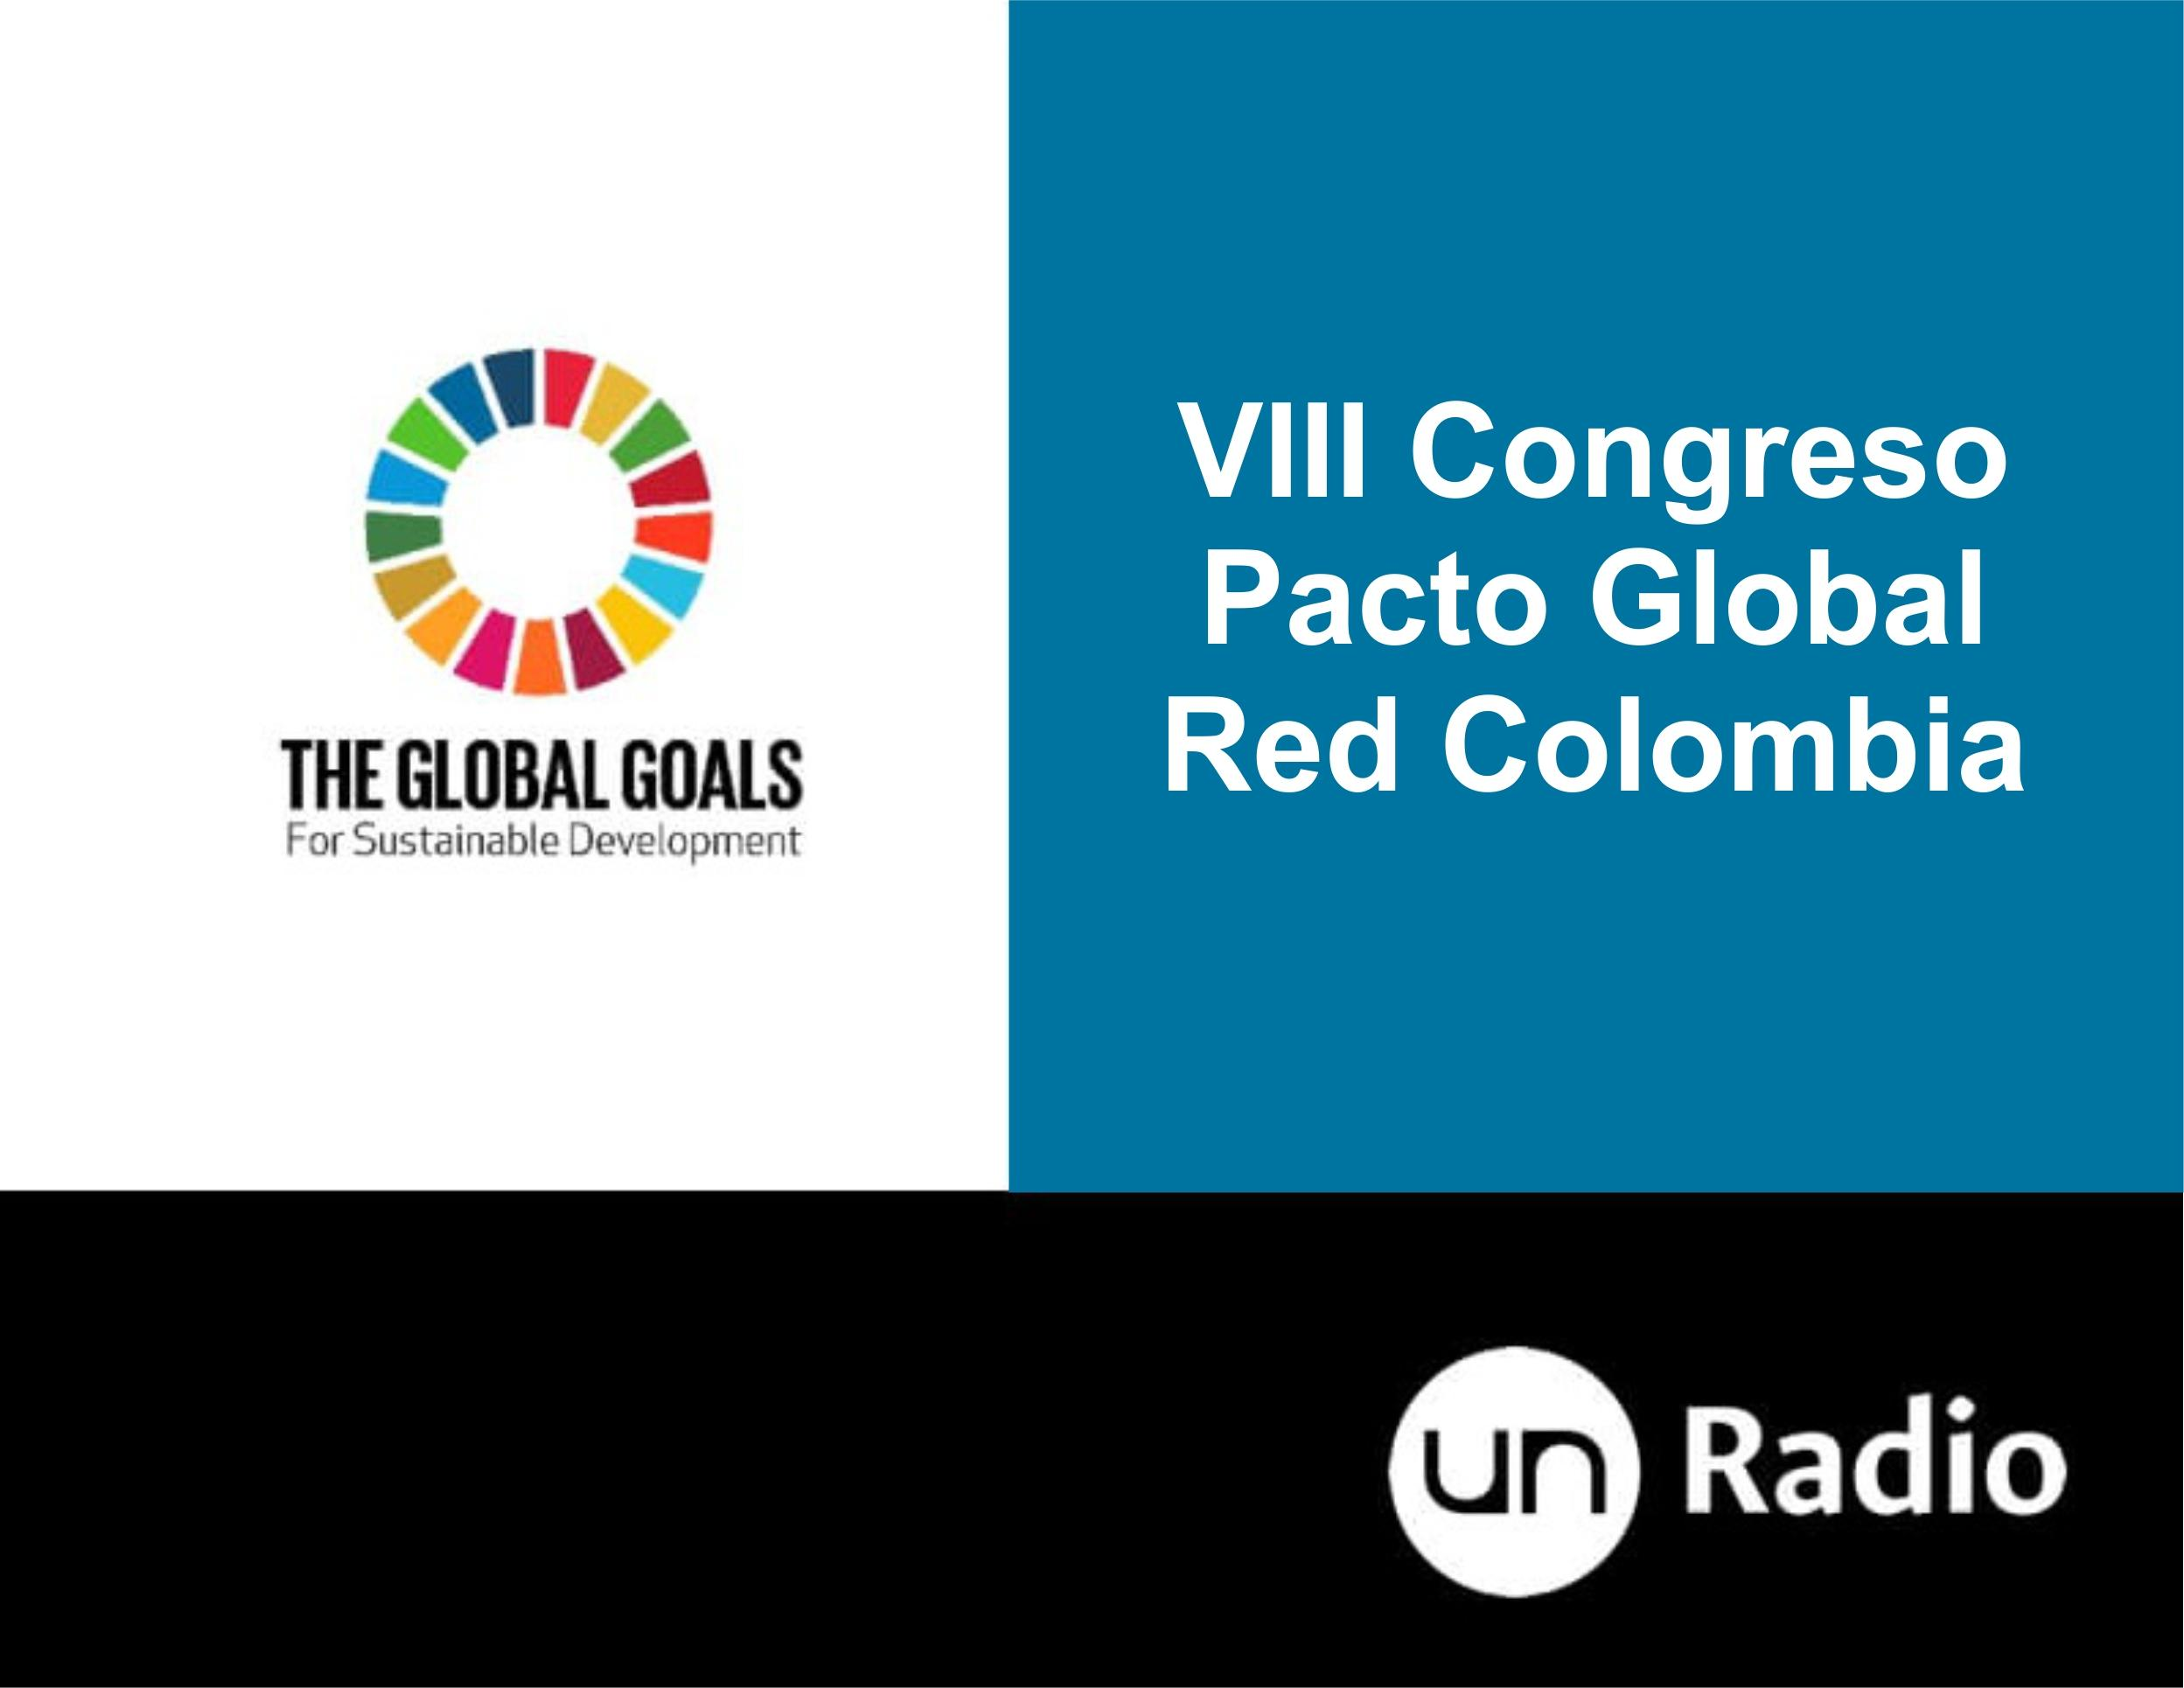 VIII Congreso Pacto Global Red Colombia